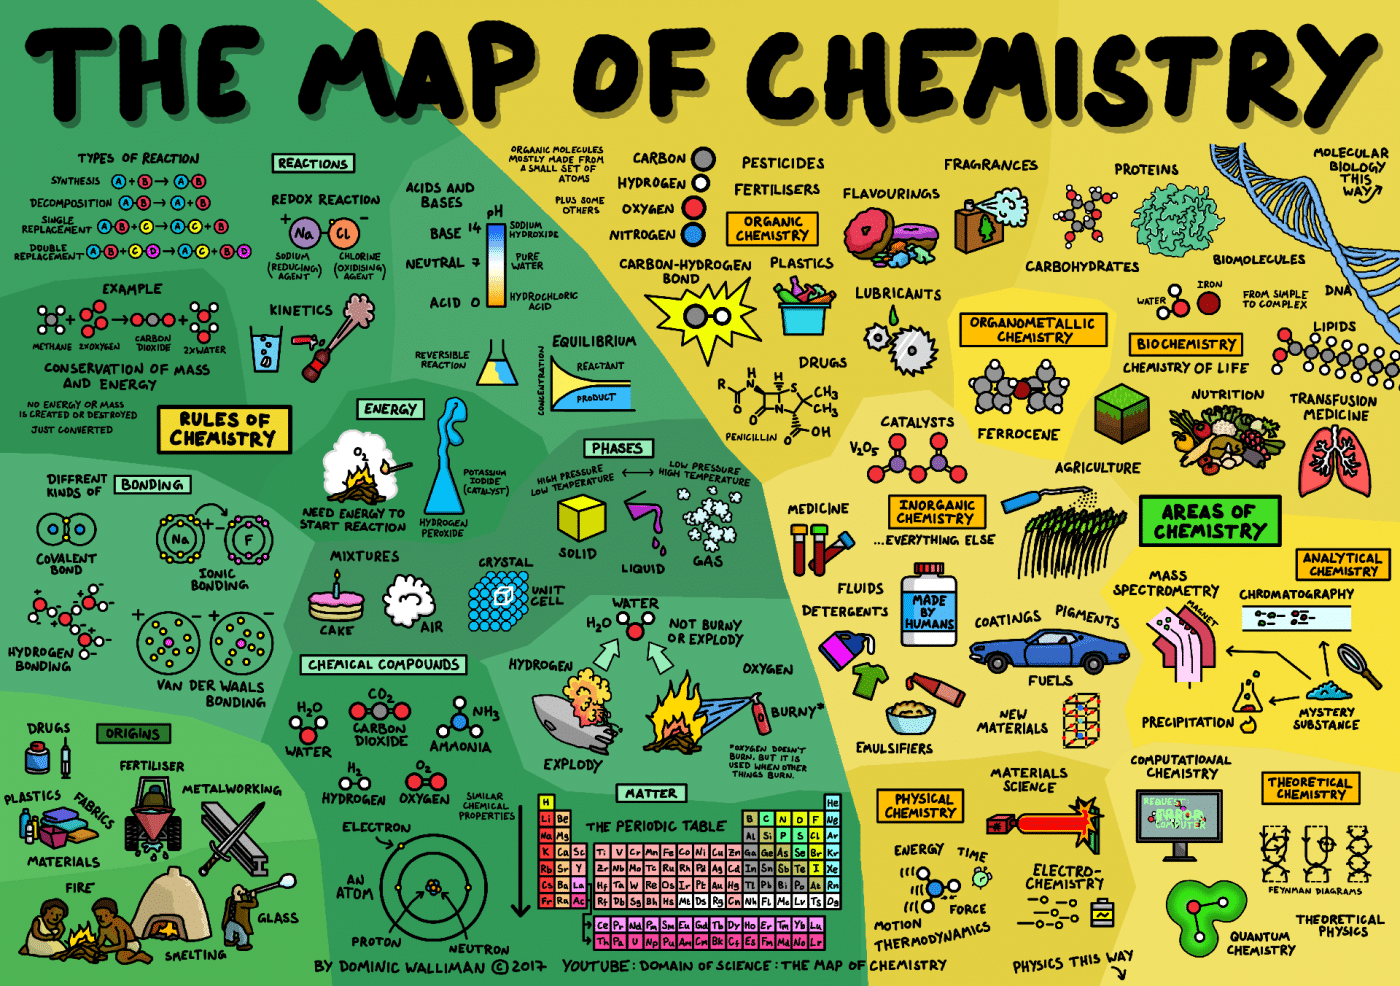 chemistry science infographics physics biology map infographic computer mathematics dominic walliman animated math branches fields relate maps visual helpful